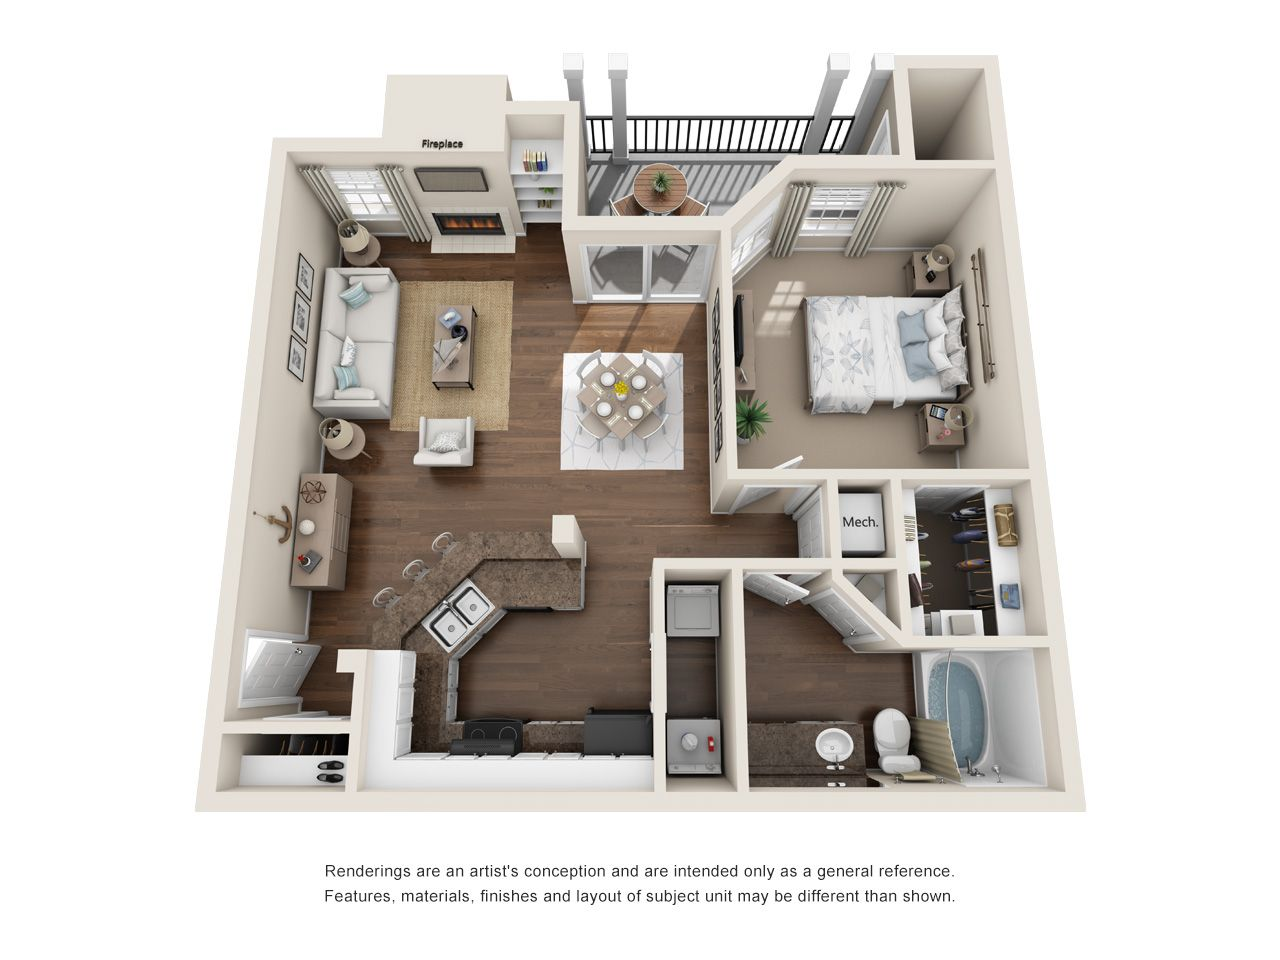 1 2 3 Bedroom Apartments For Rent In Lawrenceville Ga Steadfast Apartment Renting Rental Georgi Sims House Plans Sims House Design Apartment Layout